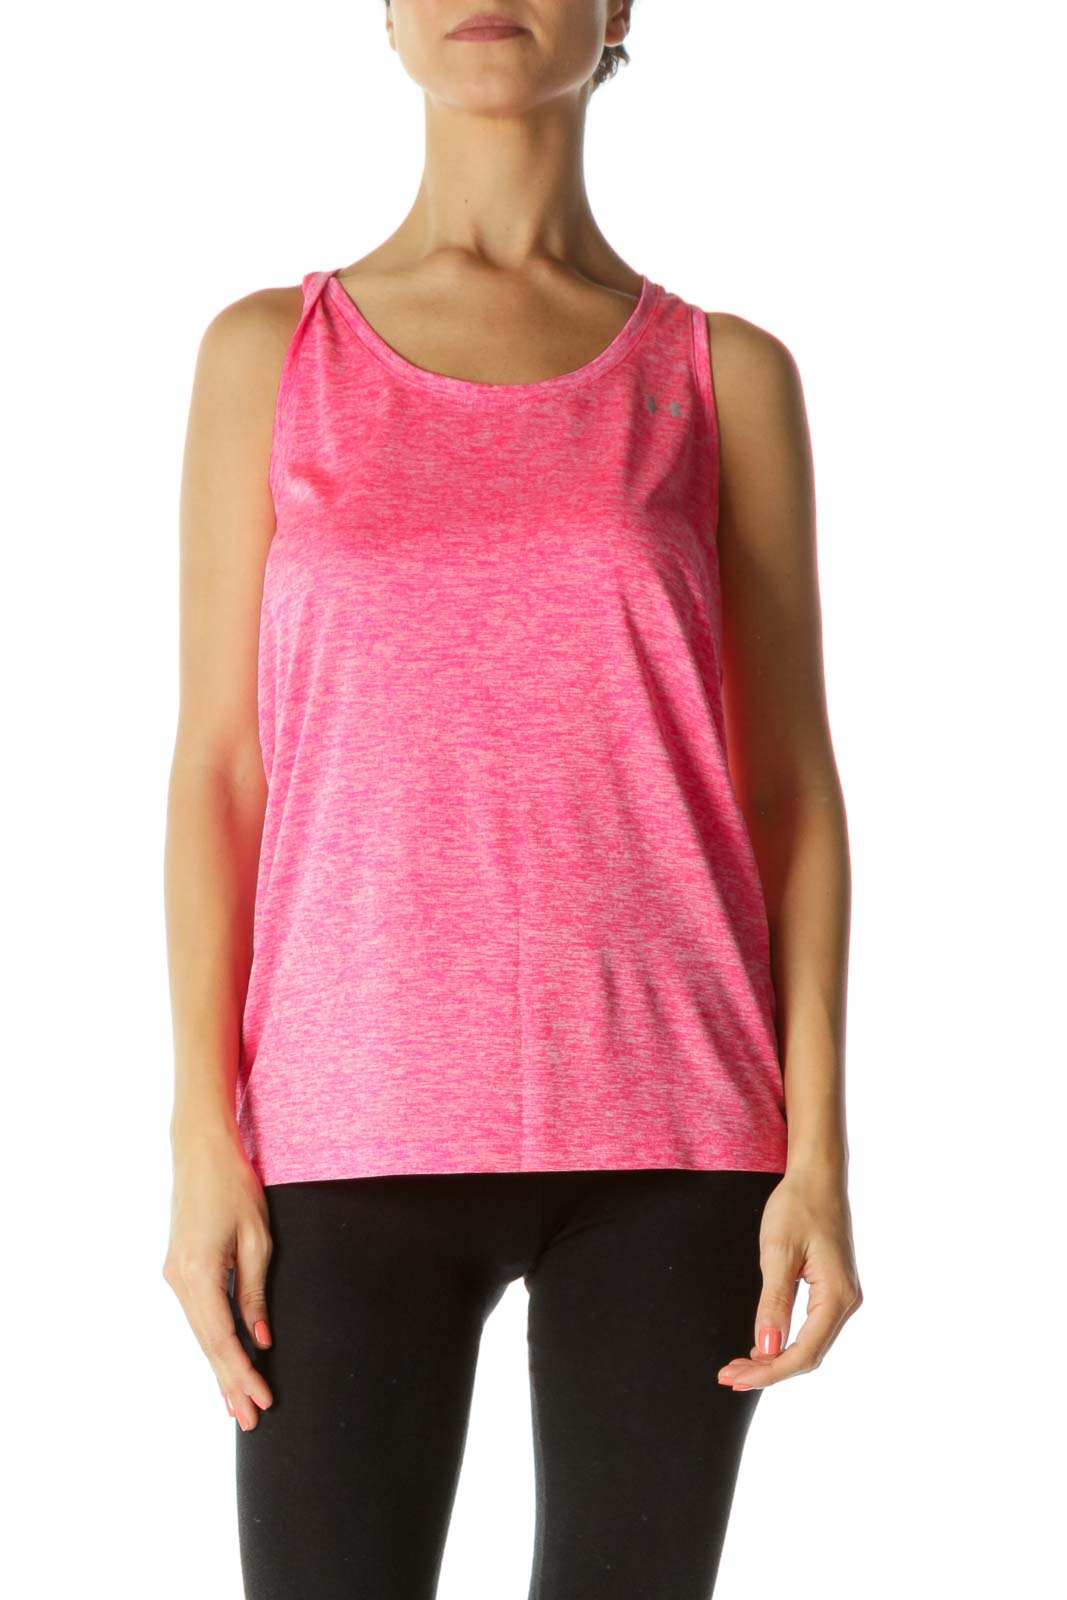 Neon Pink White Mottled Print Sports Tank Top